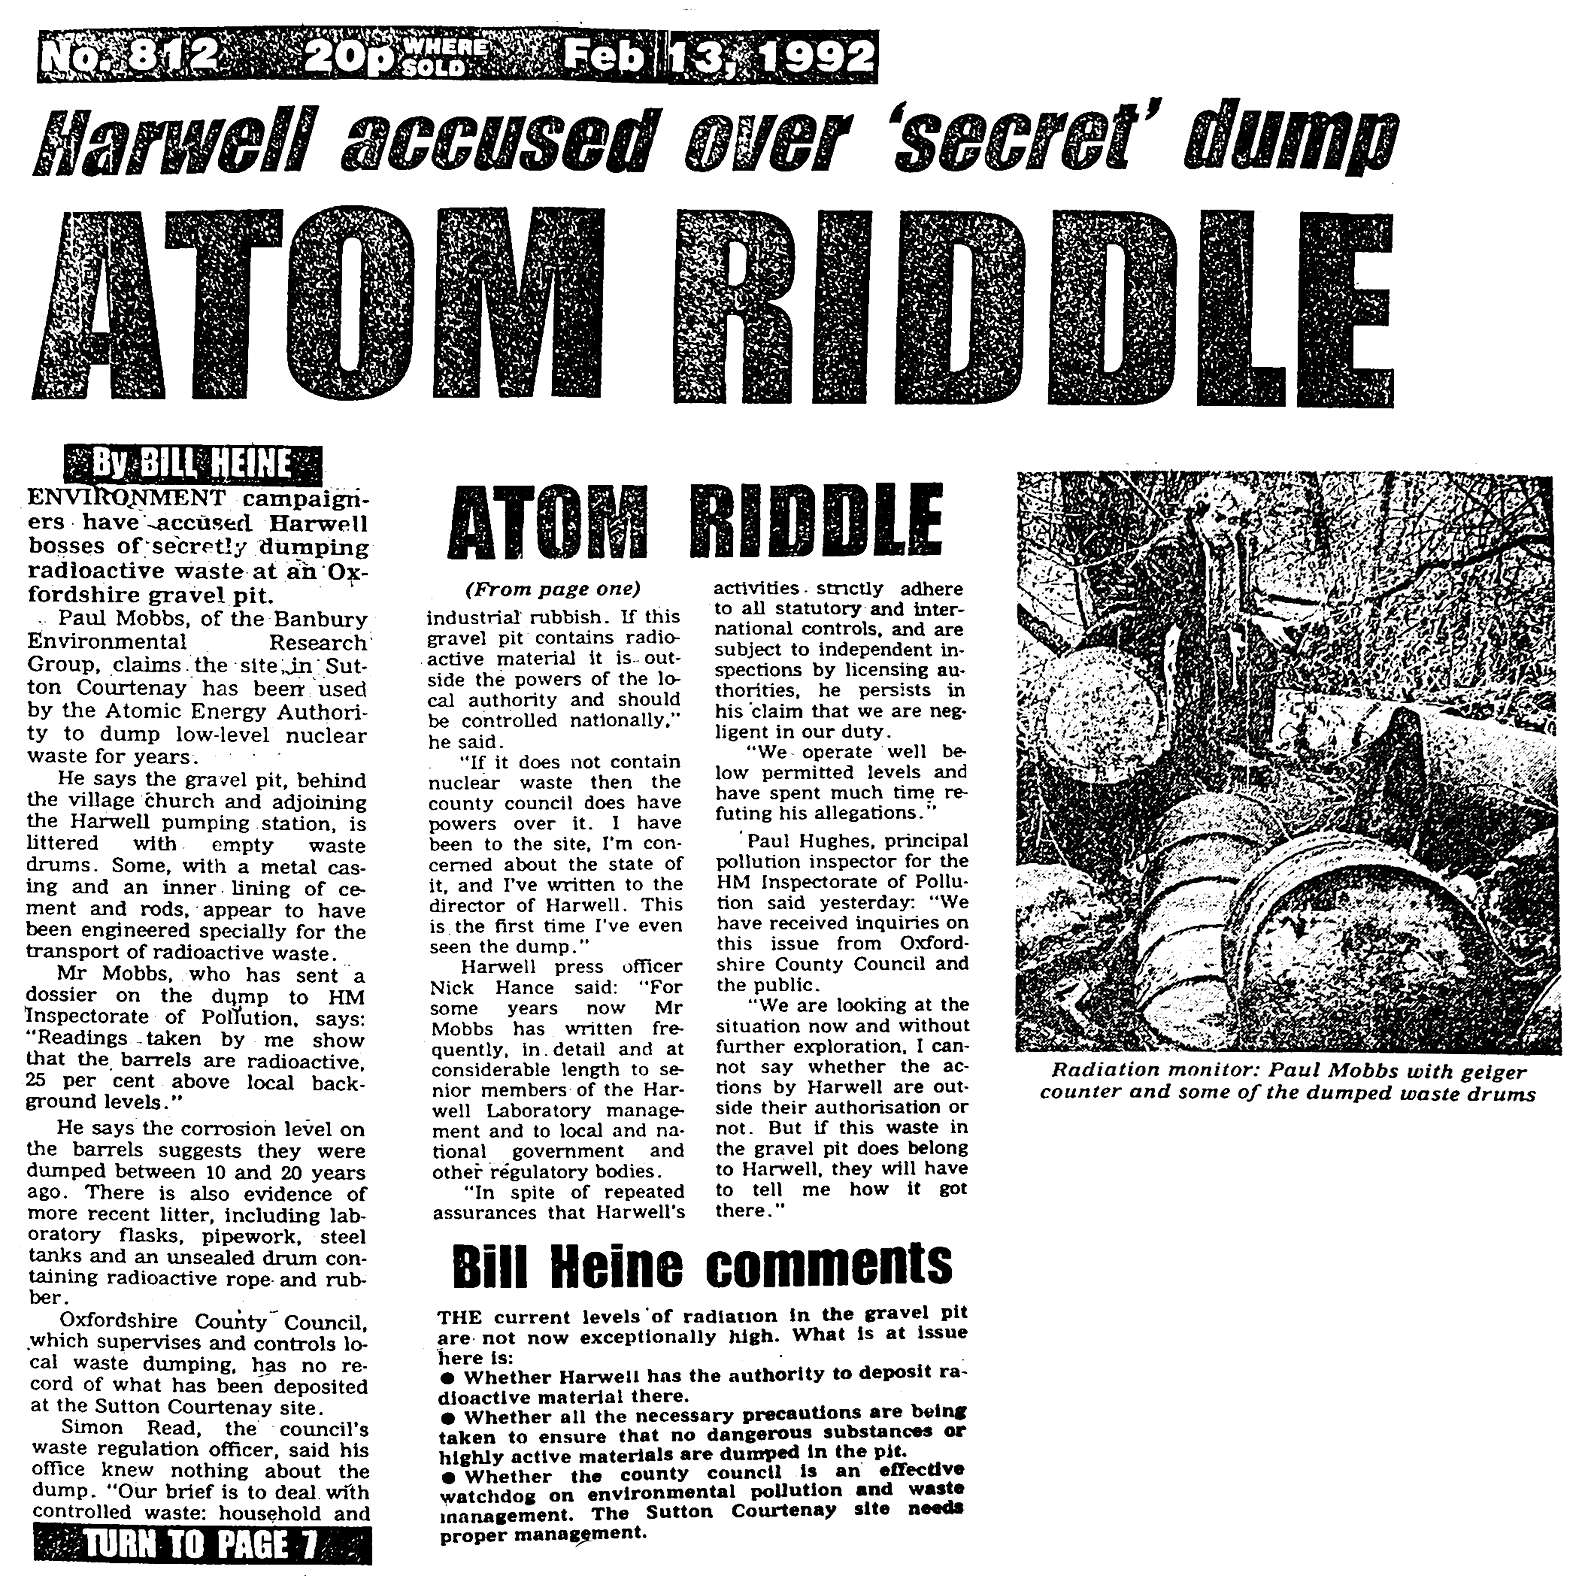 Oxford Star: 'Atom Riddle', 13th February 1992